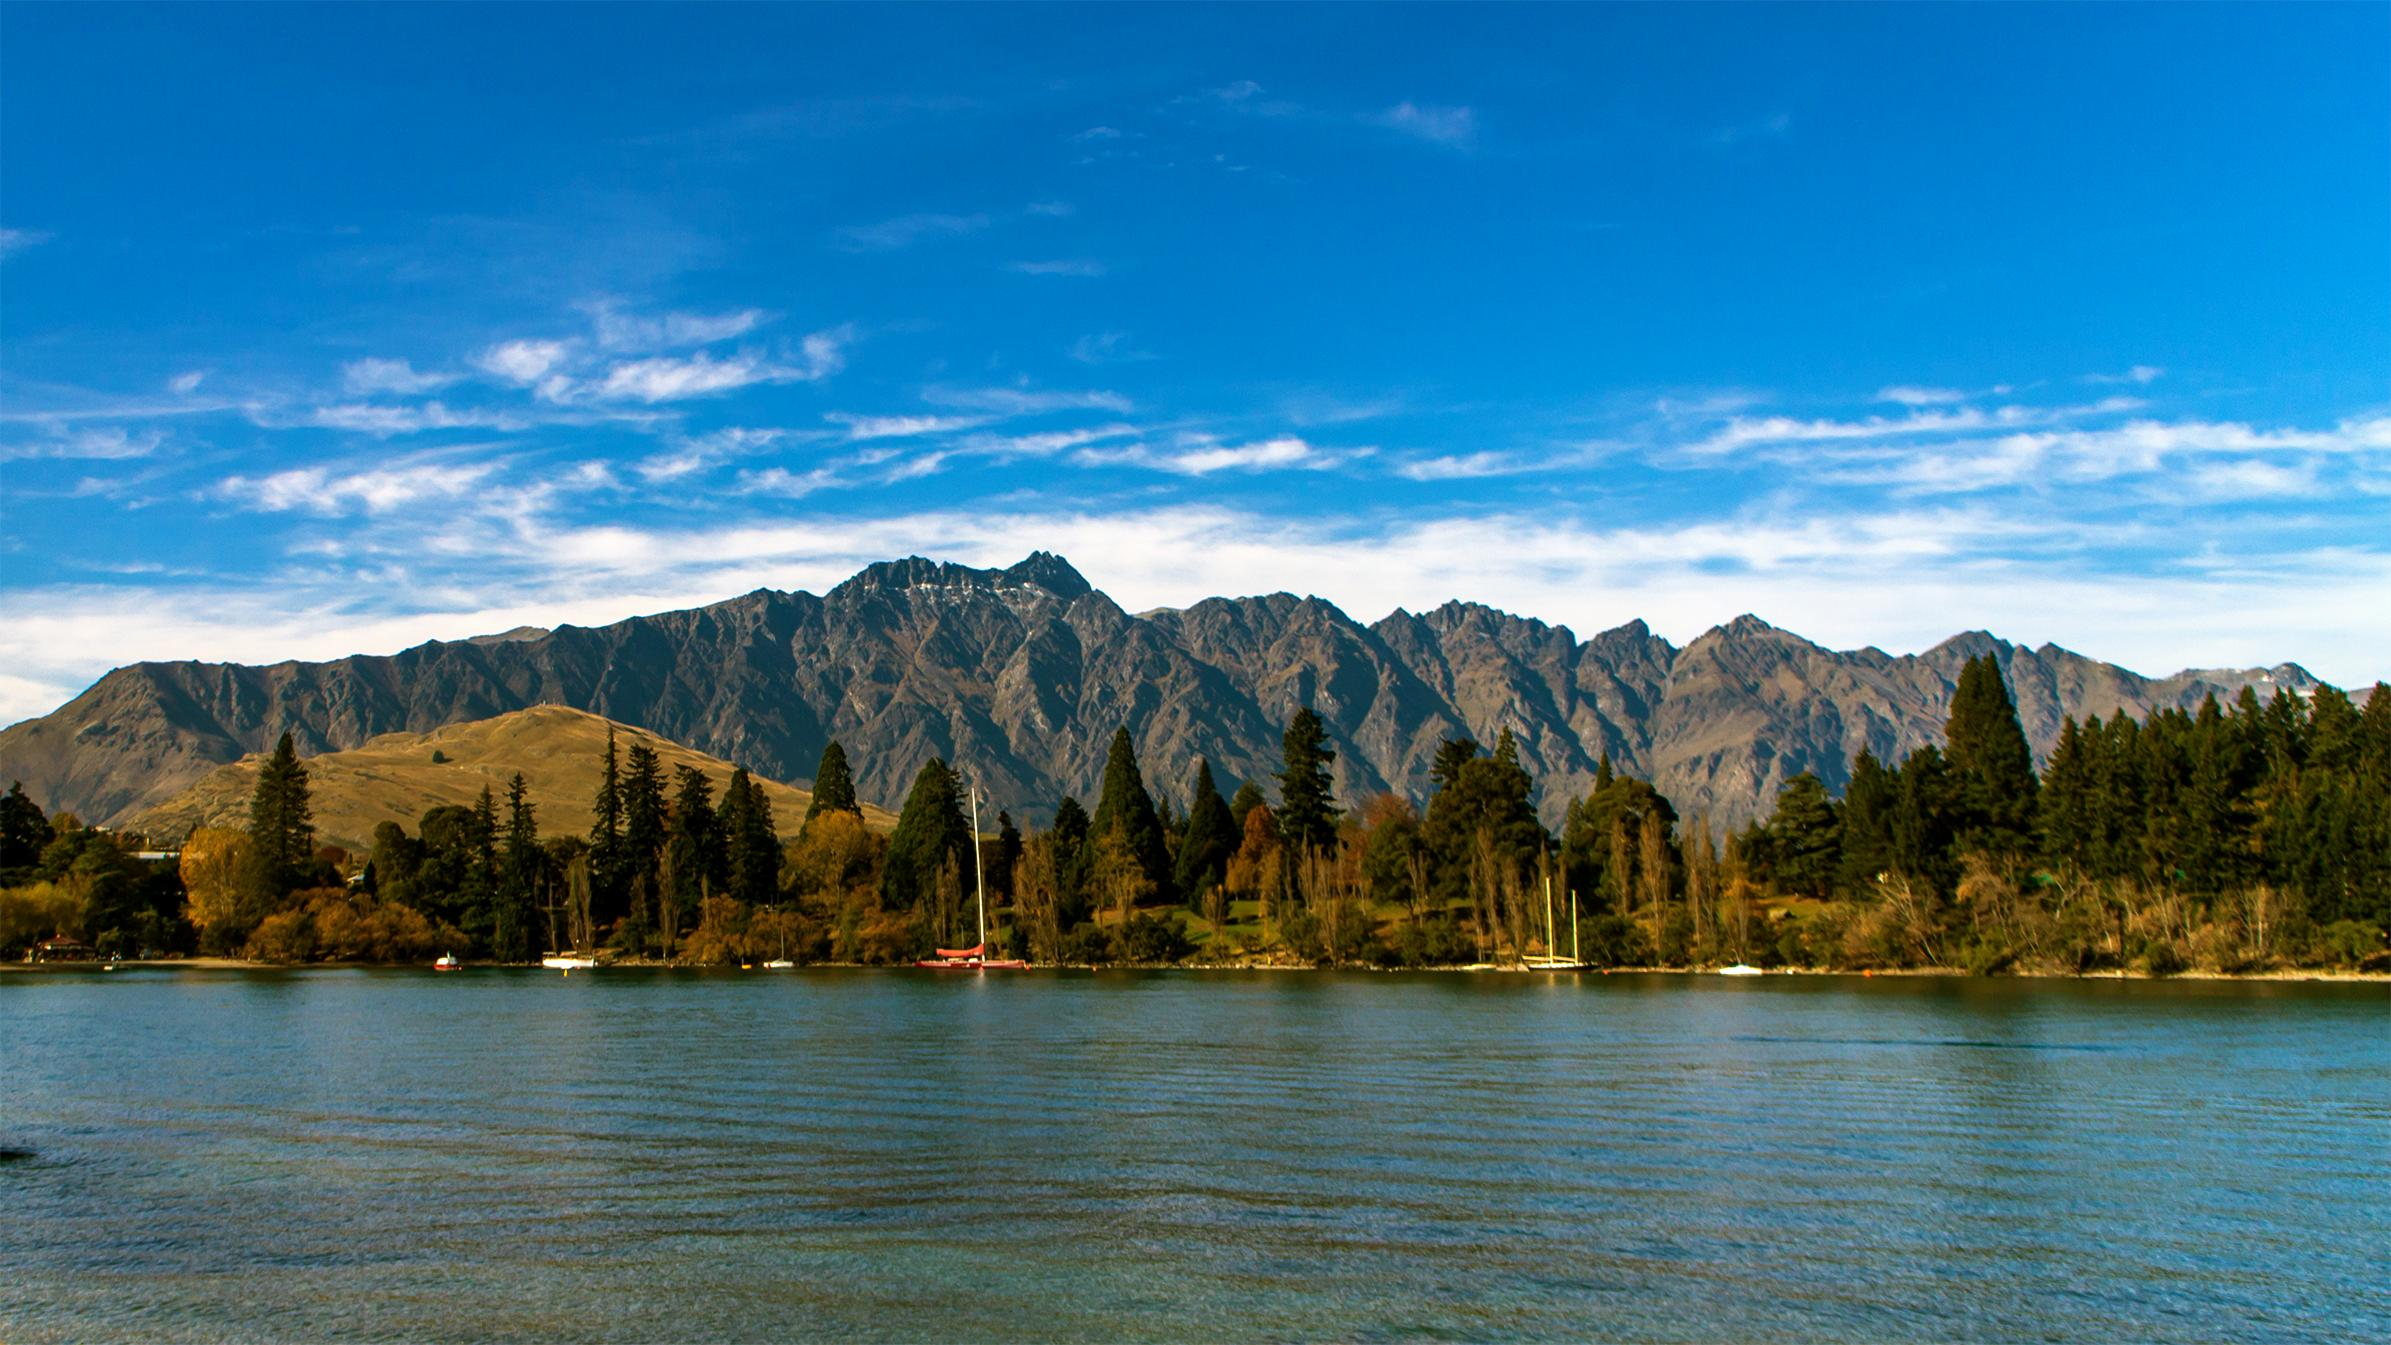 Christchurch Shooting Video Wikipedia: File:The Remarkables, New Zealand, Australasia.jpg